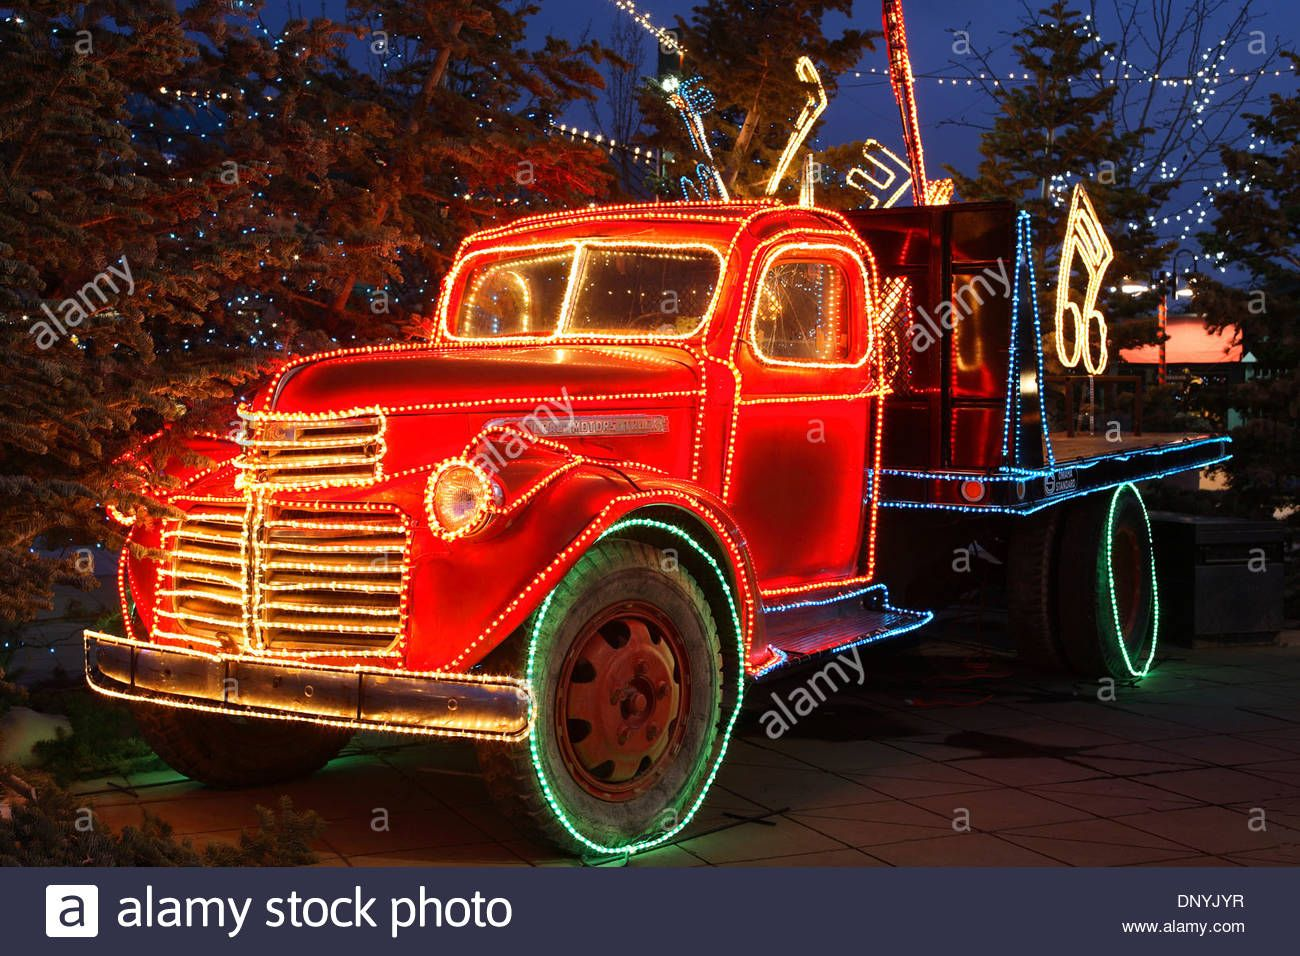 Truck Decorated With Christmas Lights River Of Lights With